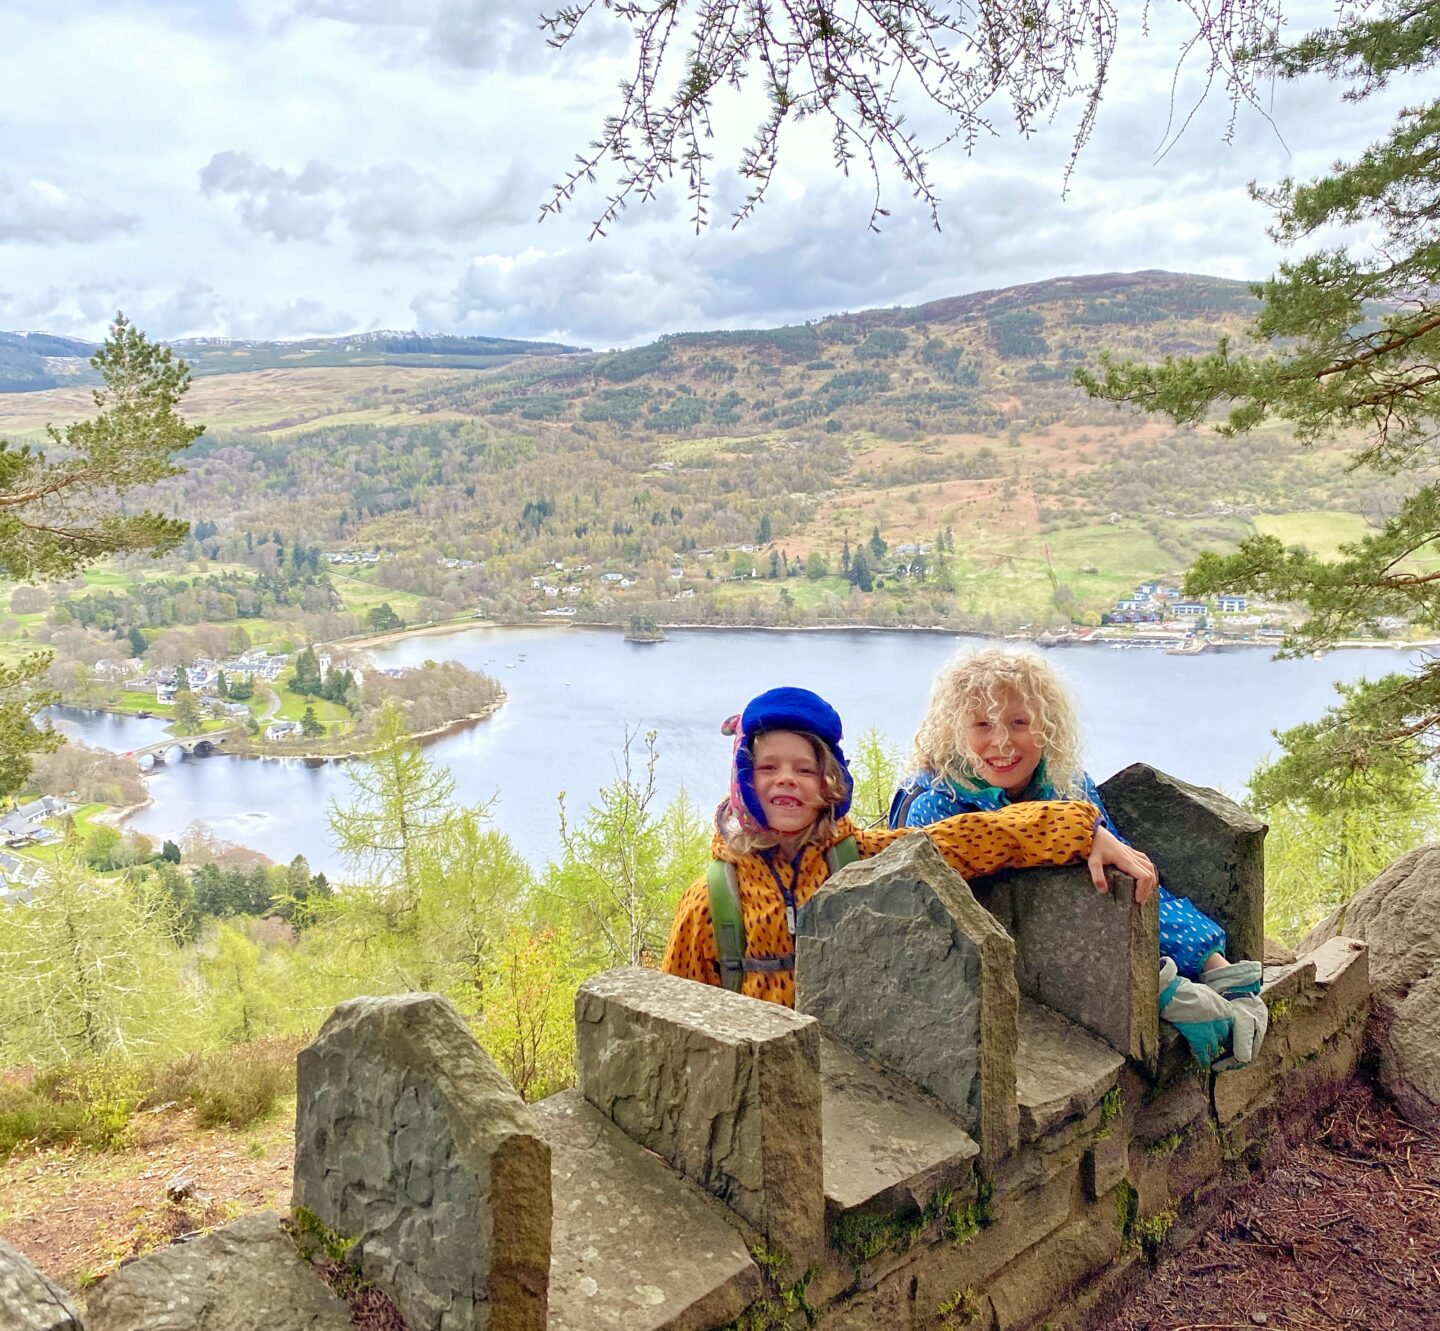 children looking over a small wall with Loch Tay down the hillside below